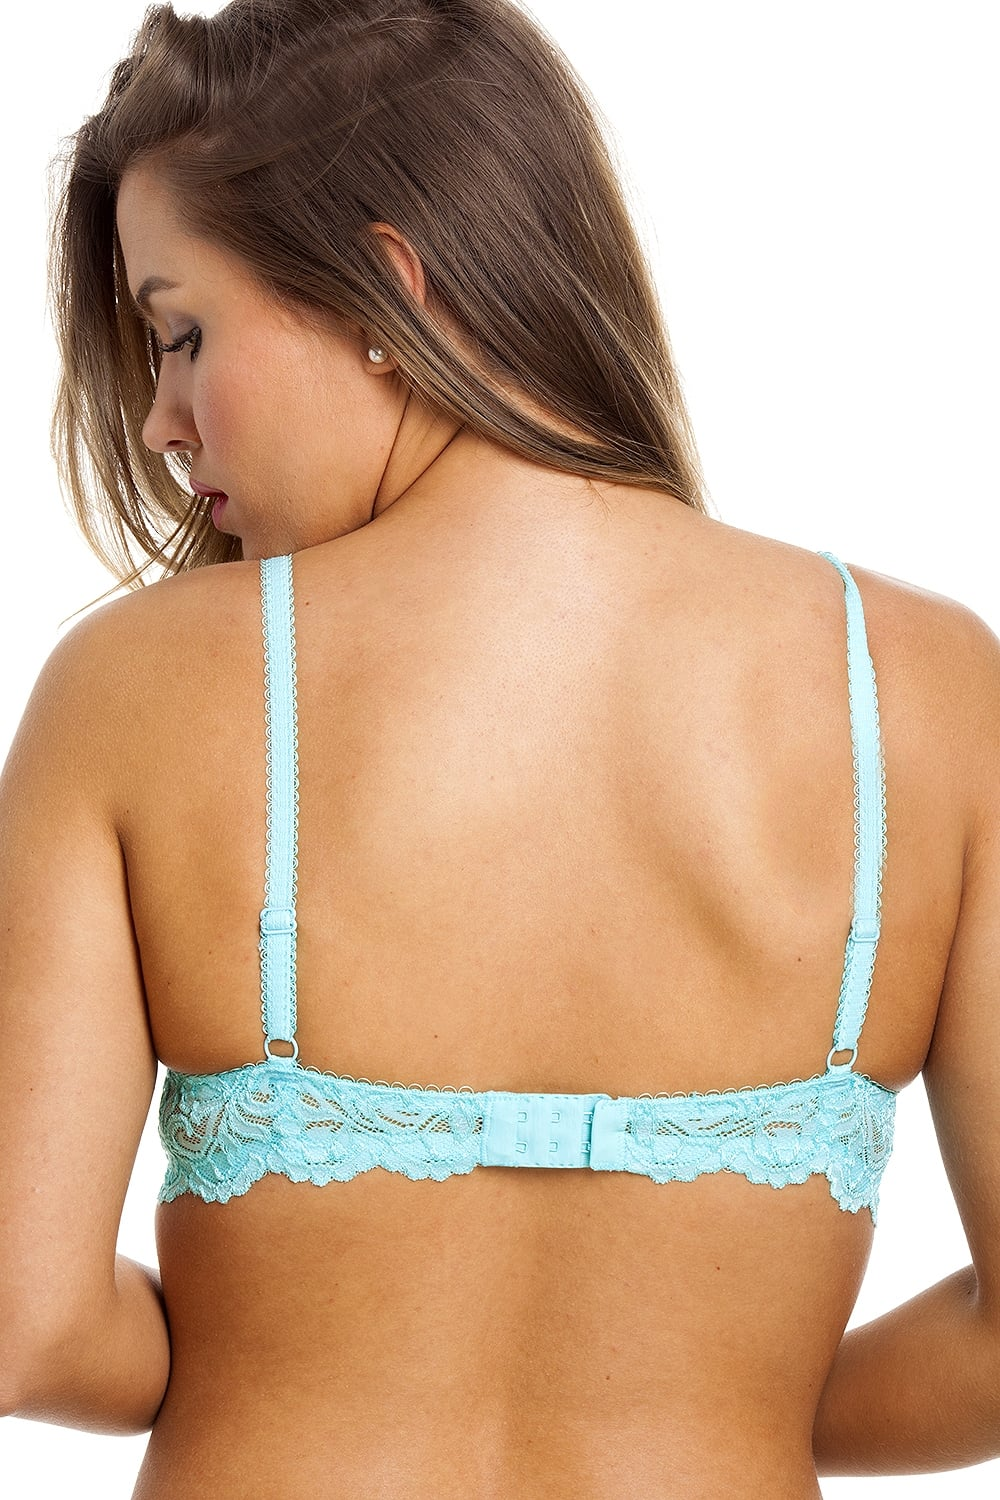 FREE shipping available - Buy push up bras at JCPenney today. Get your perfect fit with our selection of push up bras!